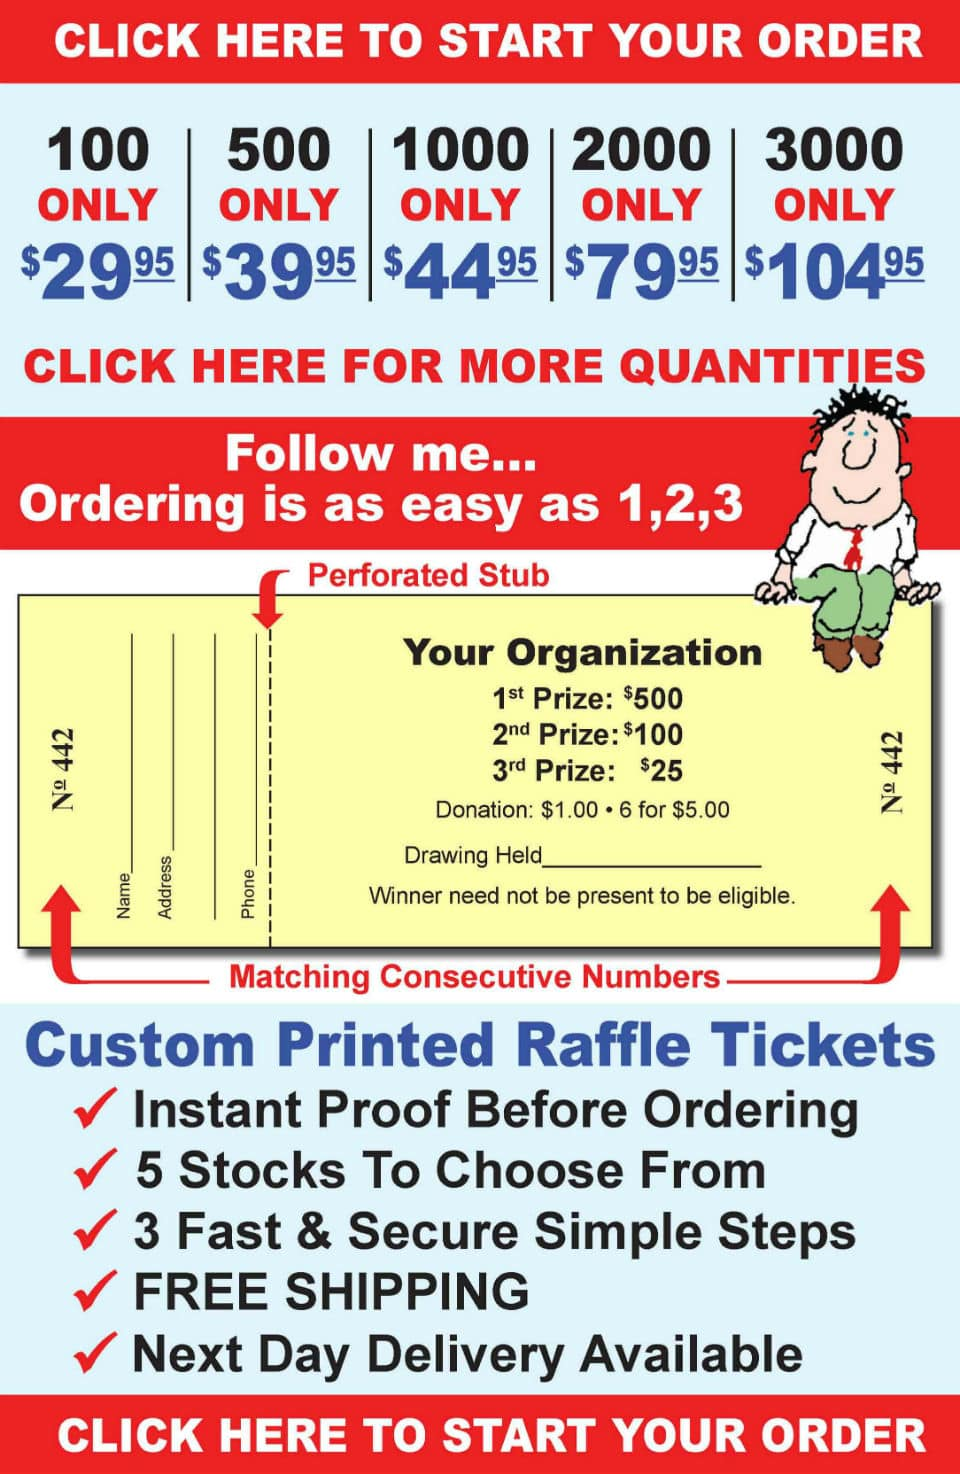 custom raffle tickets are our specialty raffleticket com no audio mode audio is disabled and user data will not be recorded enable audio